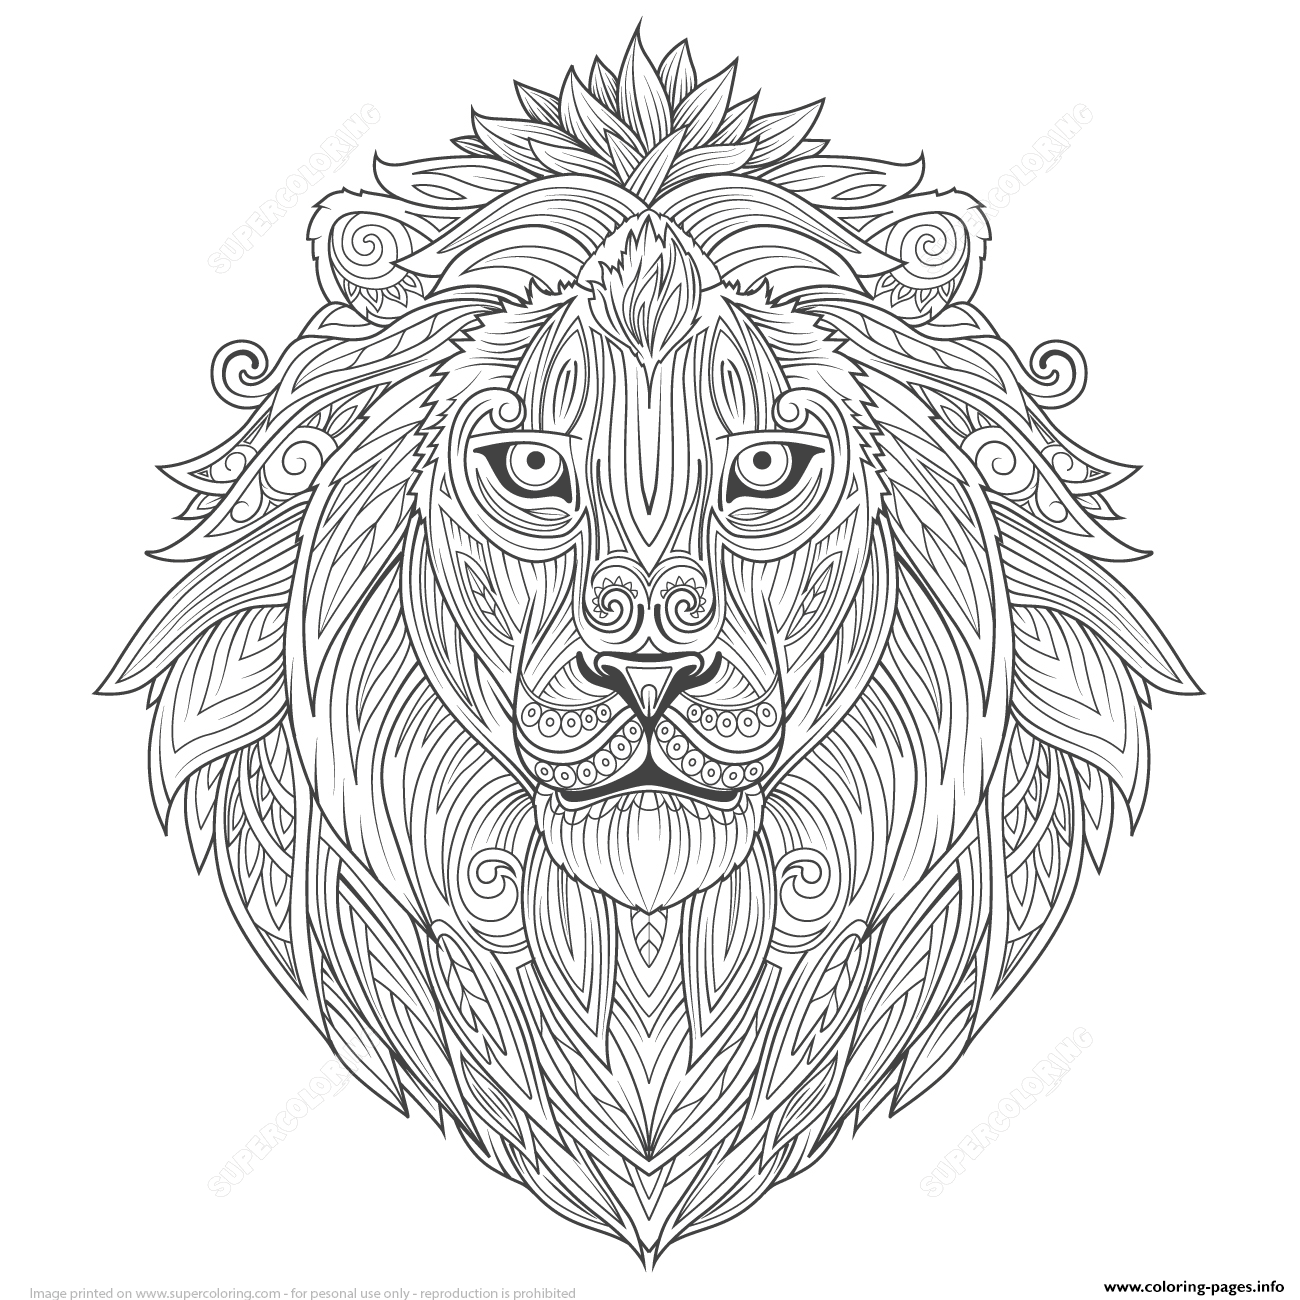 Lion Ethnic Zentangle Adults Coloring Pages Printable